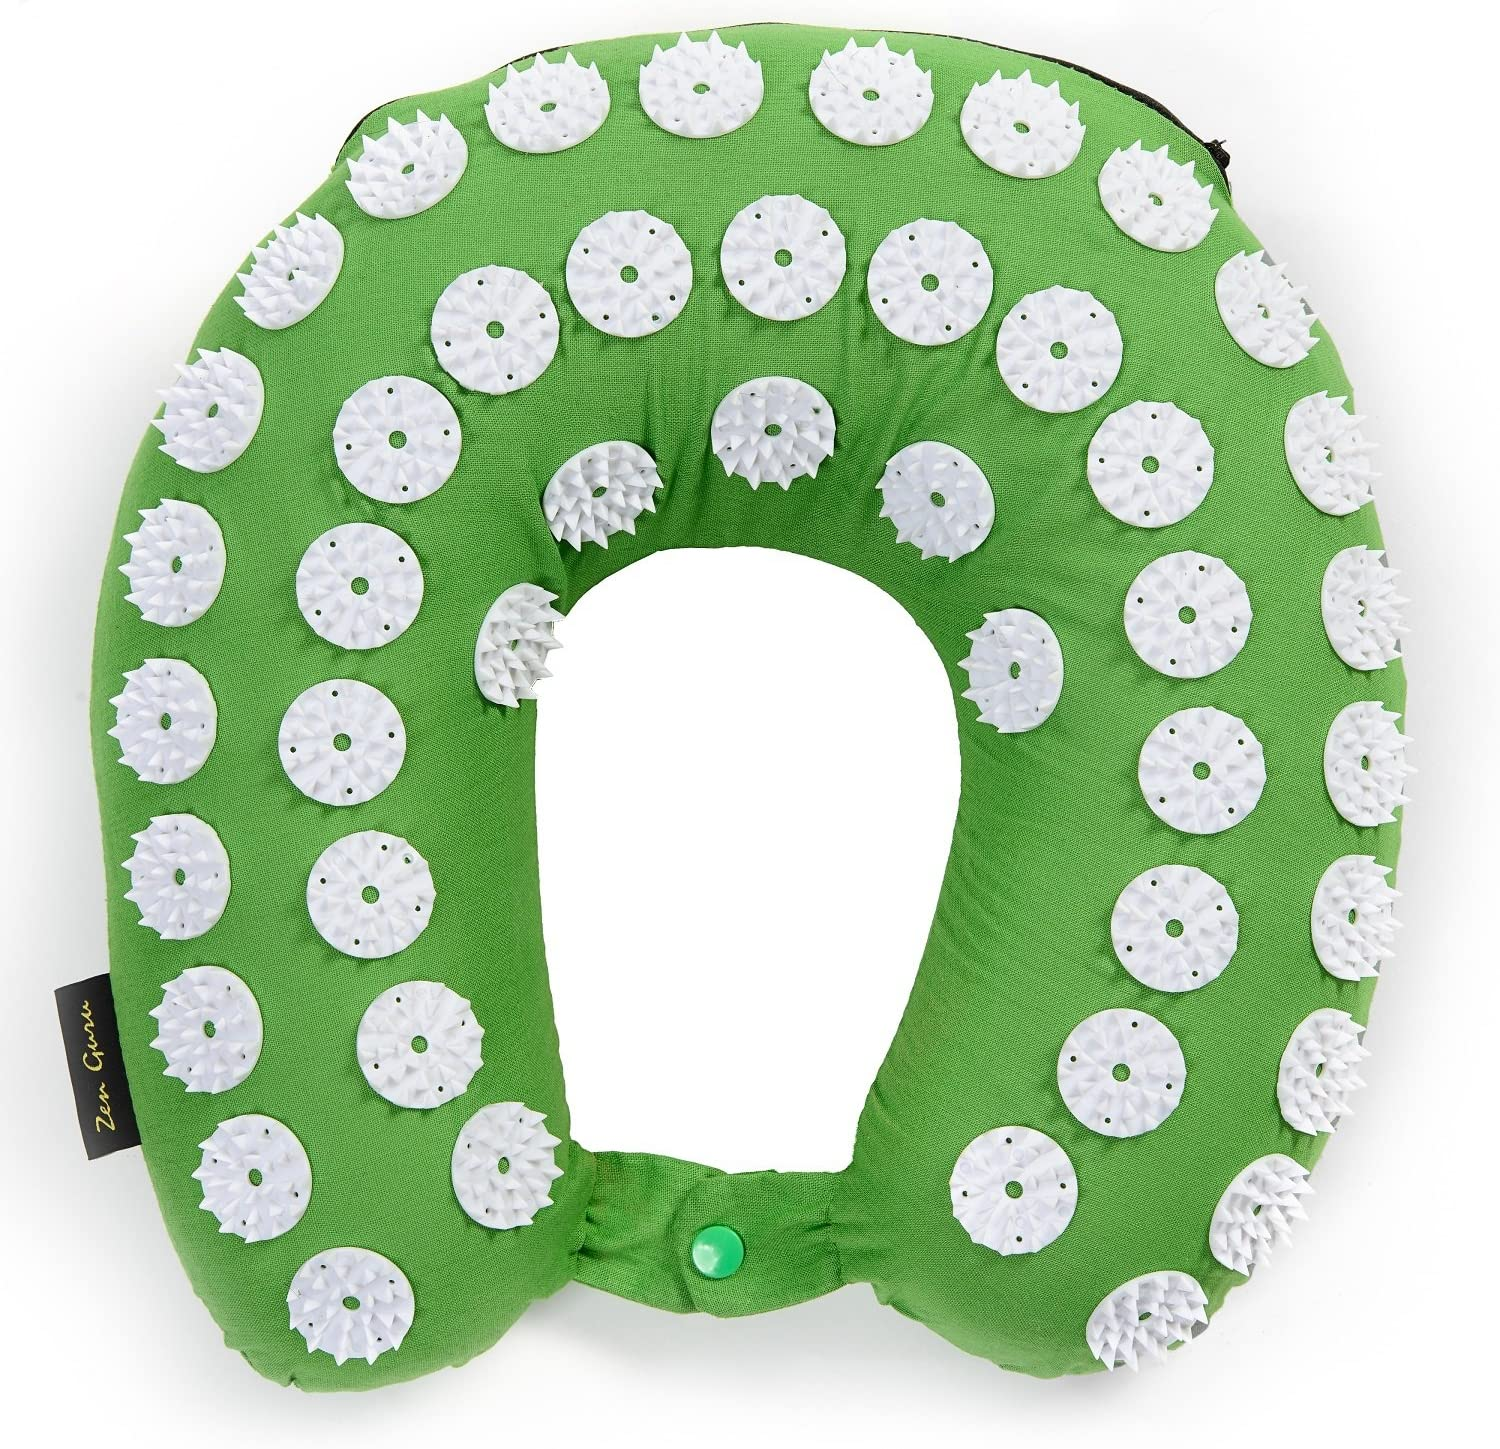 Acupressure U Shaped Neck Pillow